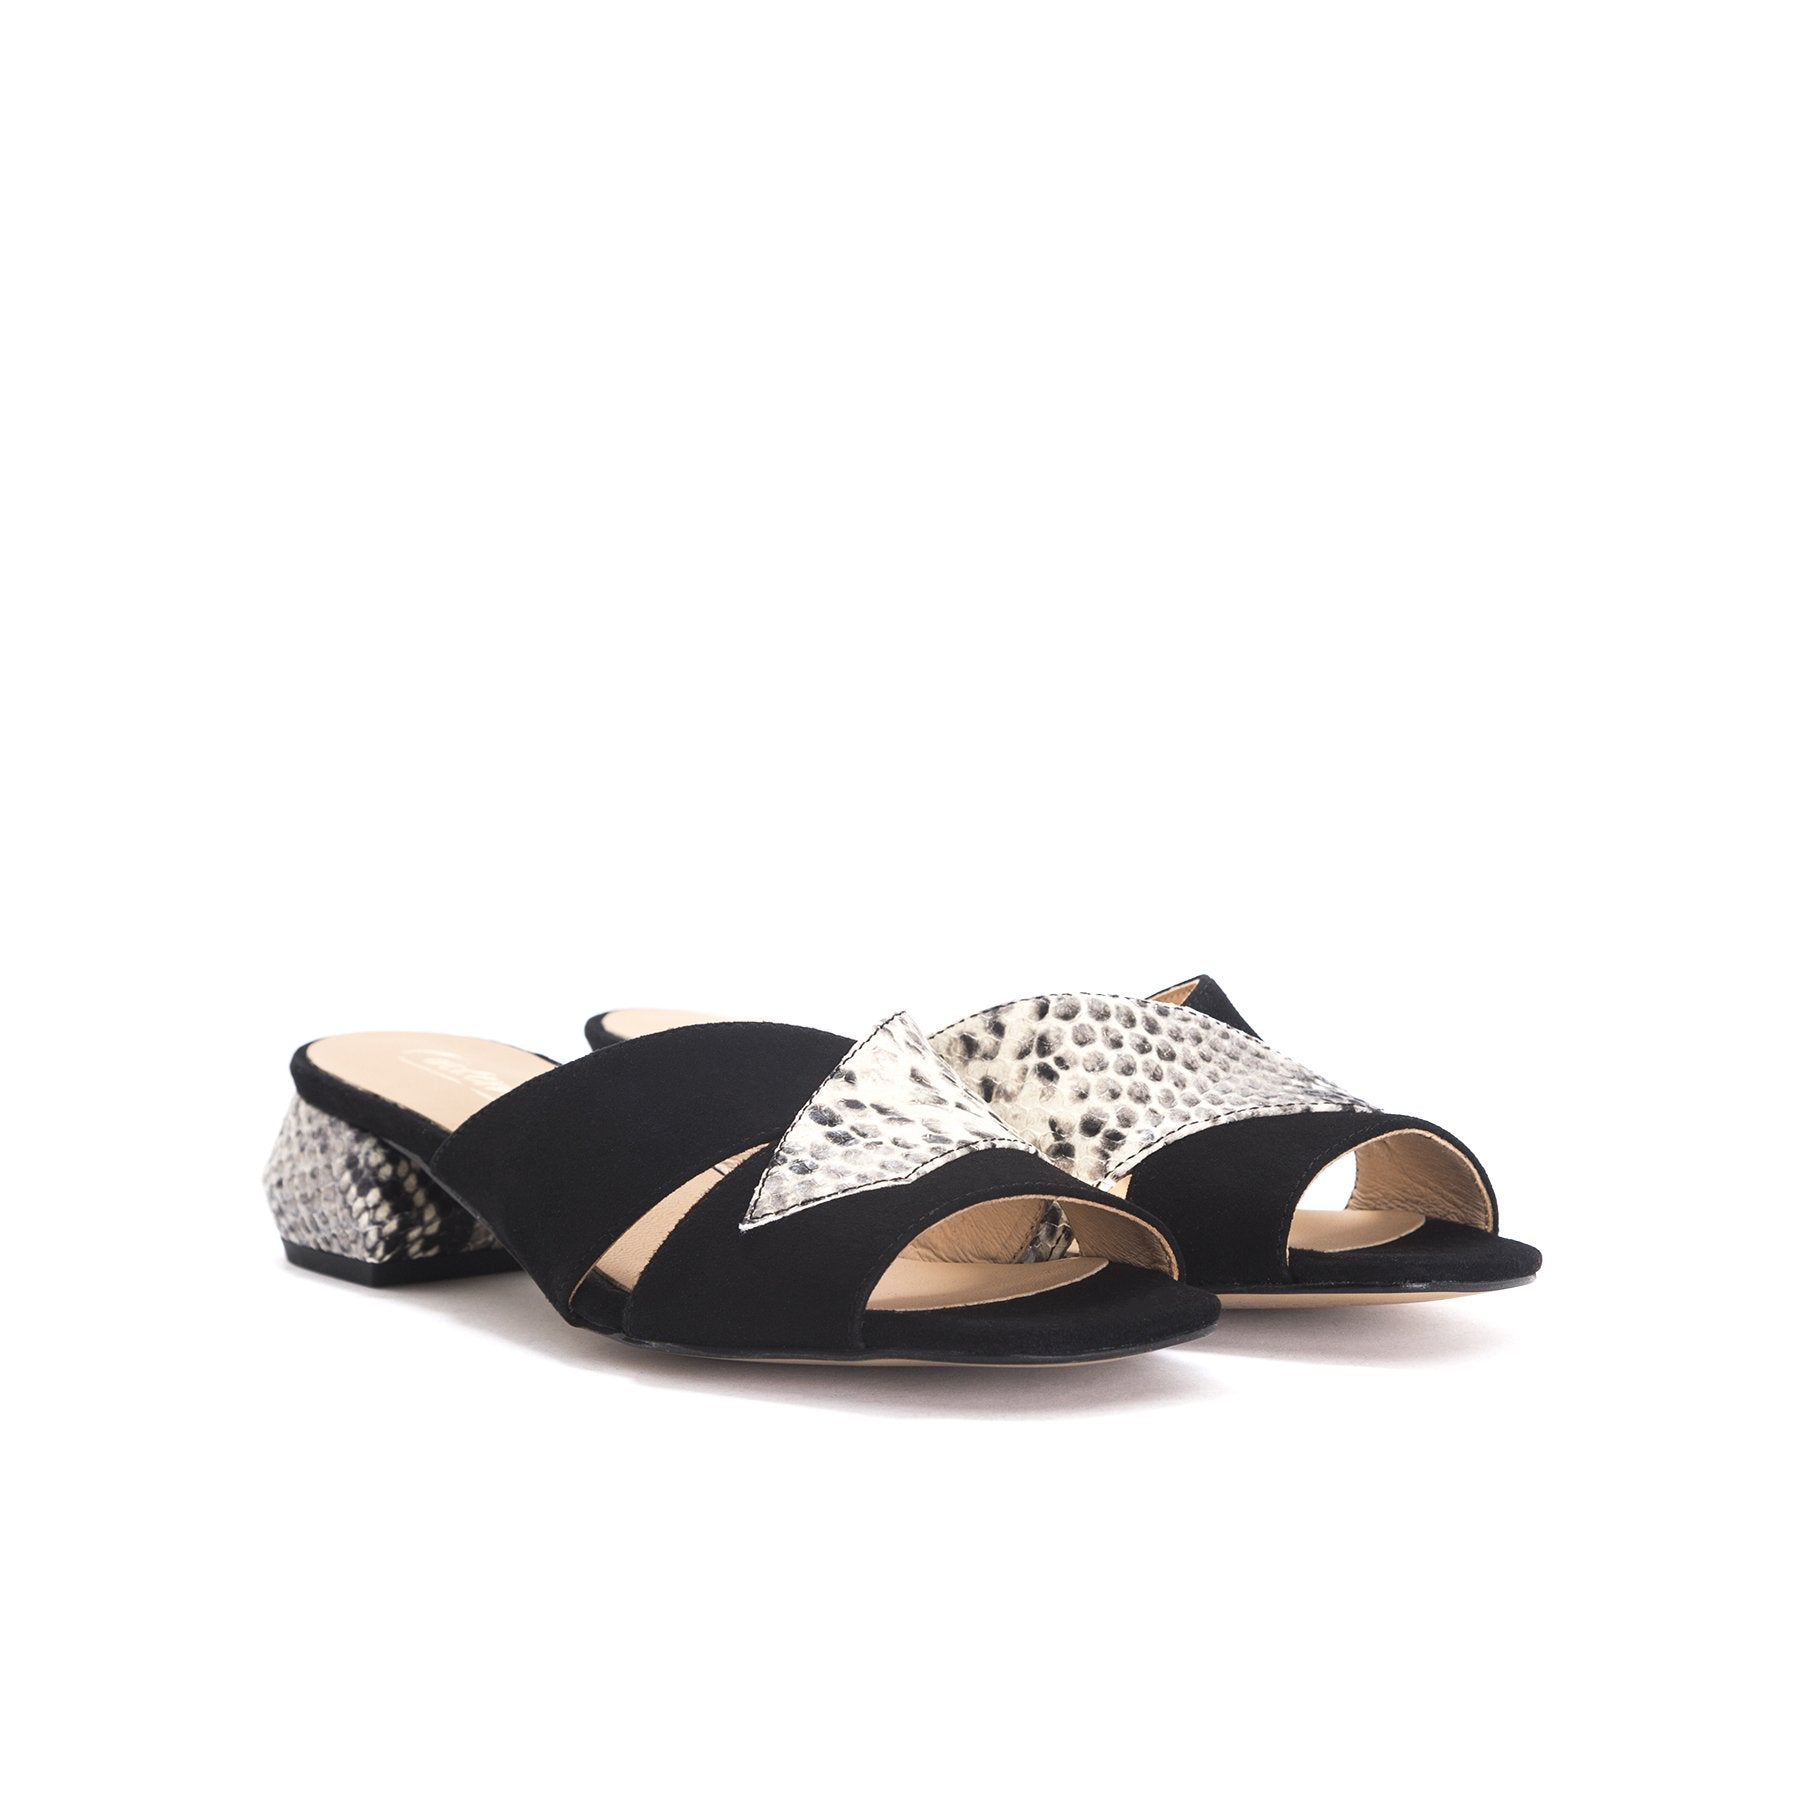 Gracie Black Snake&Suede Sandals